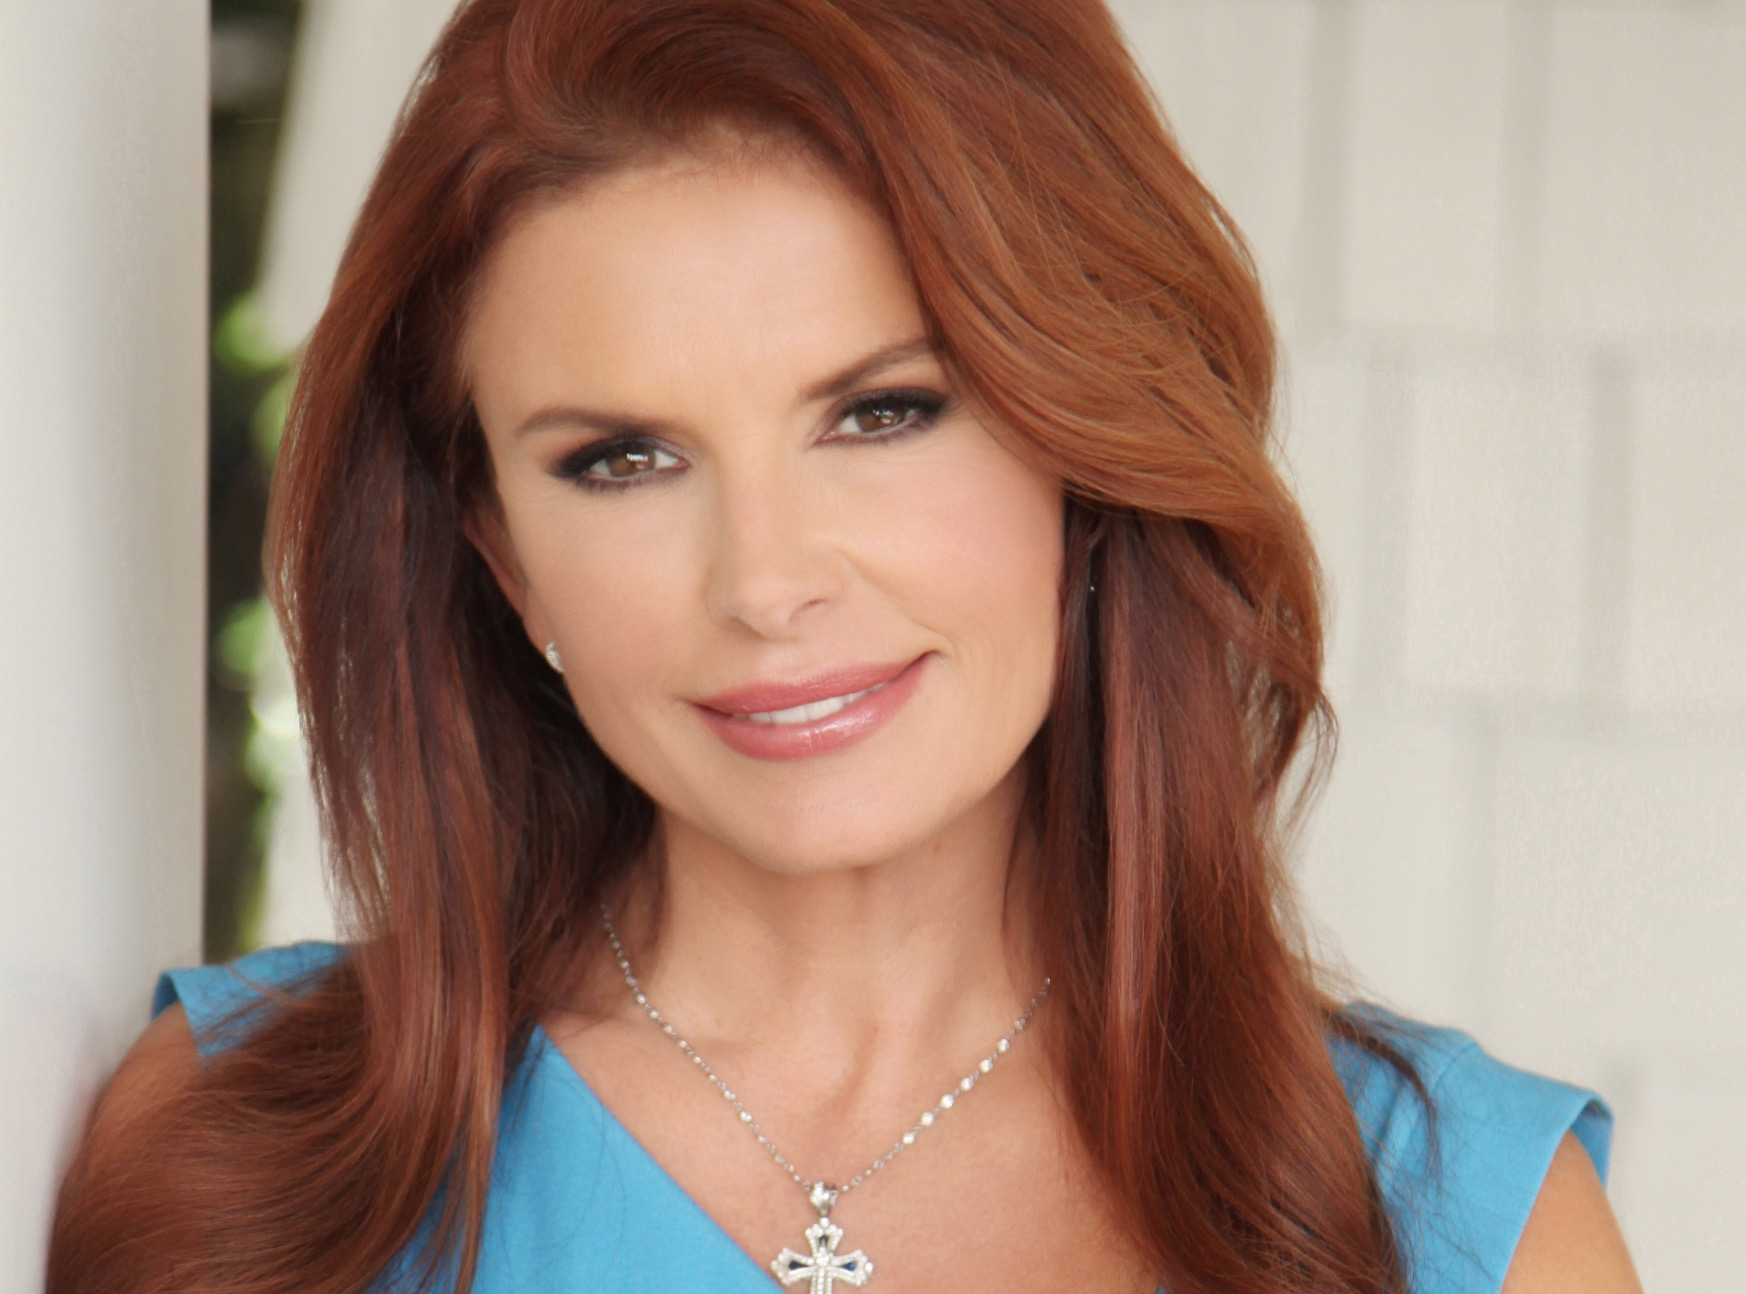 027 Roma Downey Thriving Beyond Belief